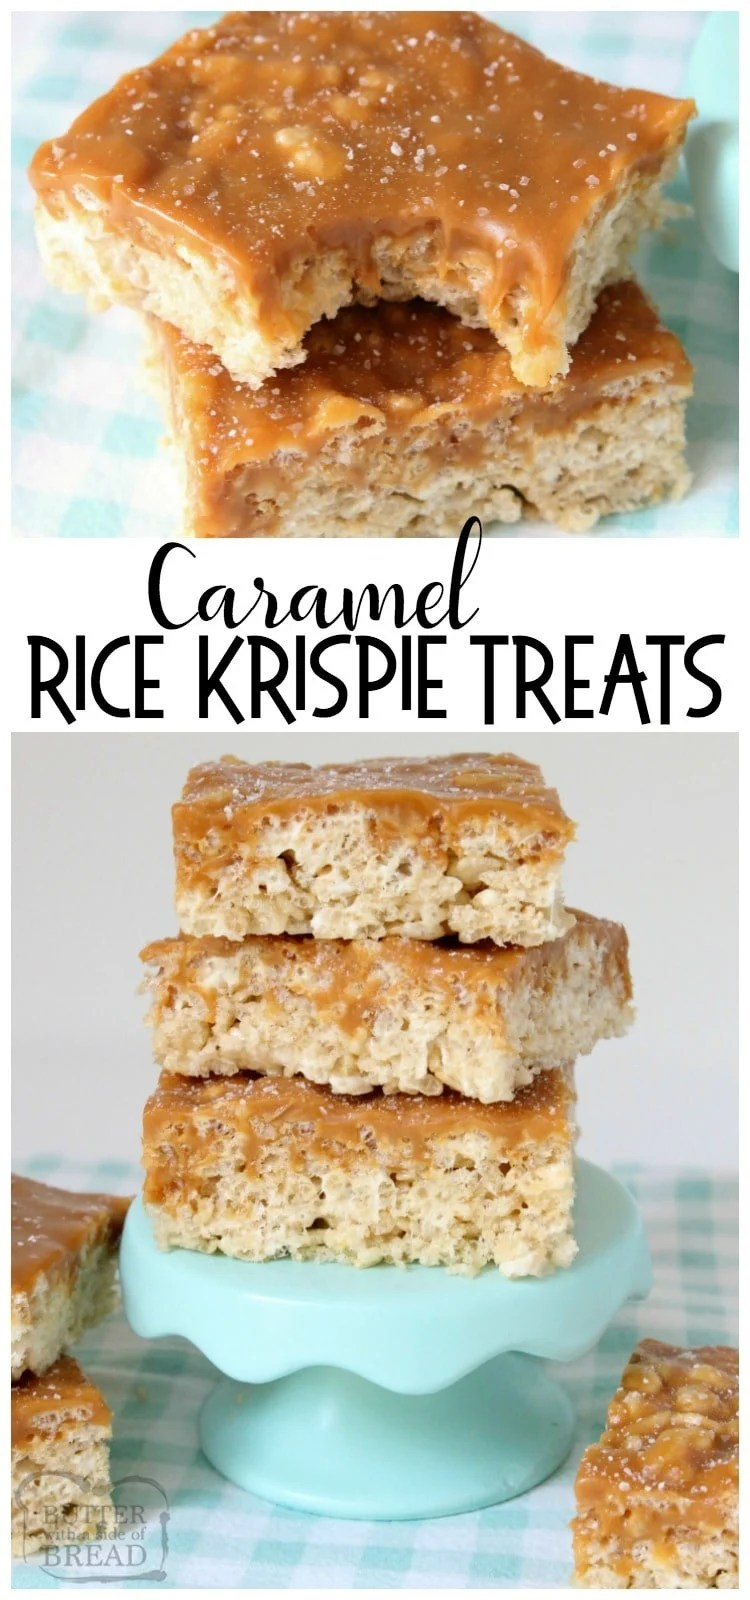 Caramel Rice Krispie Treats are soft, chewy marshmallow squares topped with smooth, rich caramel for an incredible take on traditional rice krispie treats. Easy rice krispie treat recipe from Butter With A Side of Bread